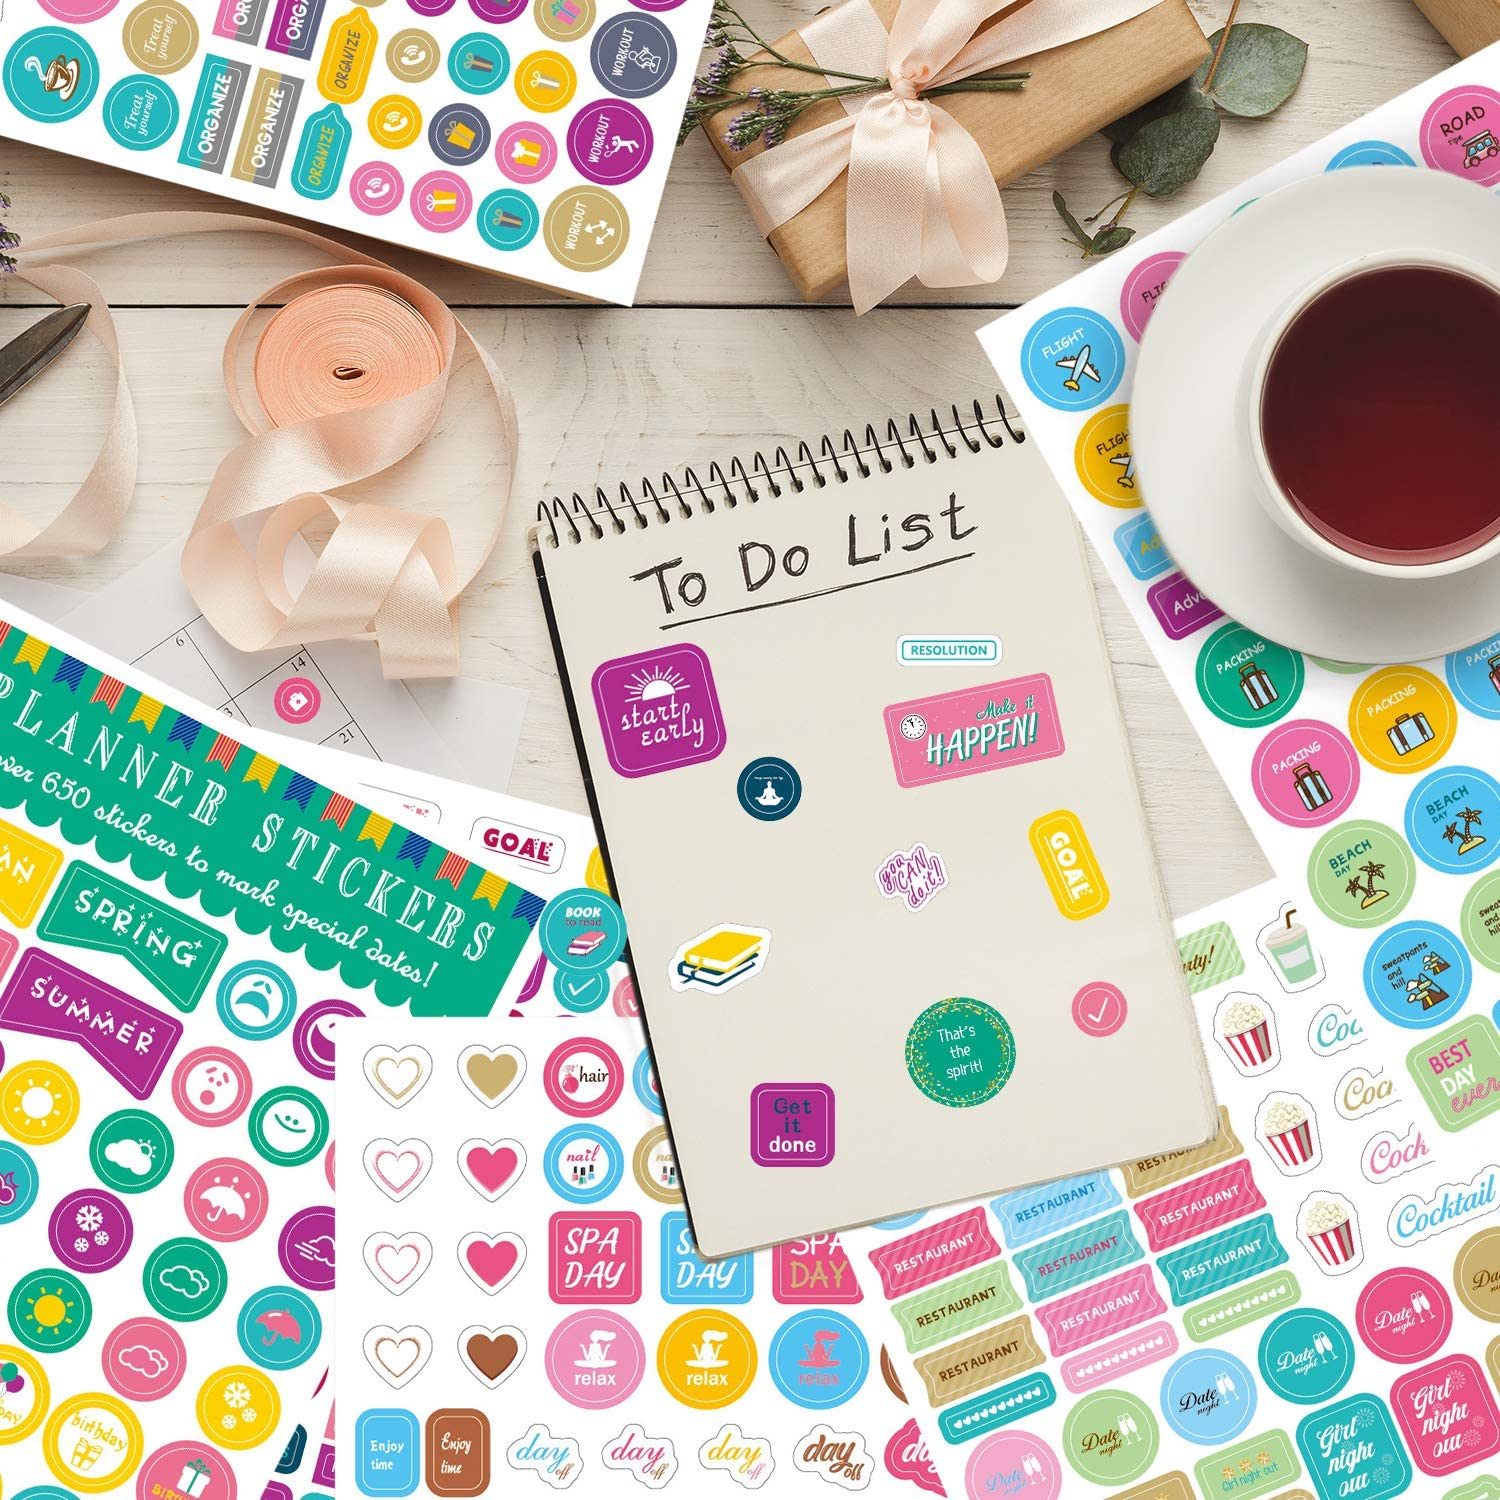 Planners Calendars Konsait 24Sheets 1380 Planner Stickers Organize Planner Journals Calendars,Monthly Weekly Daily Planner Sticker Decorative Designer Stickers Accessories for Bullet Journals